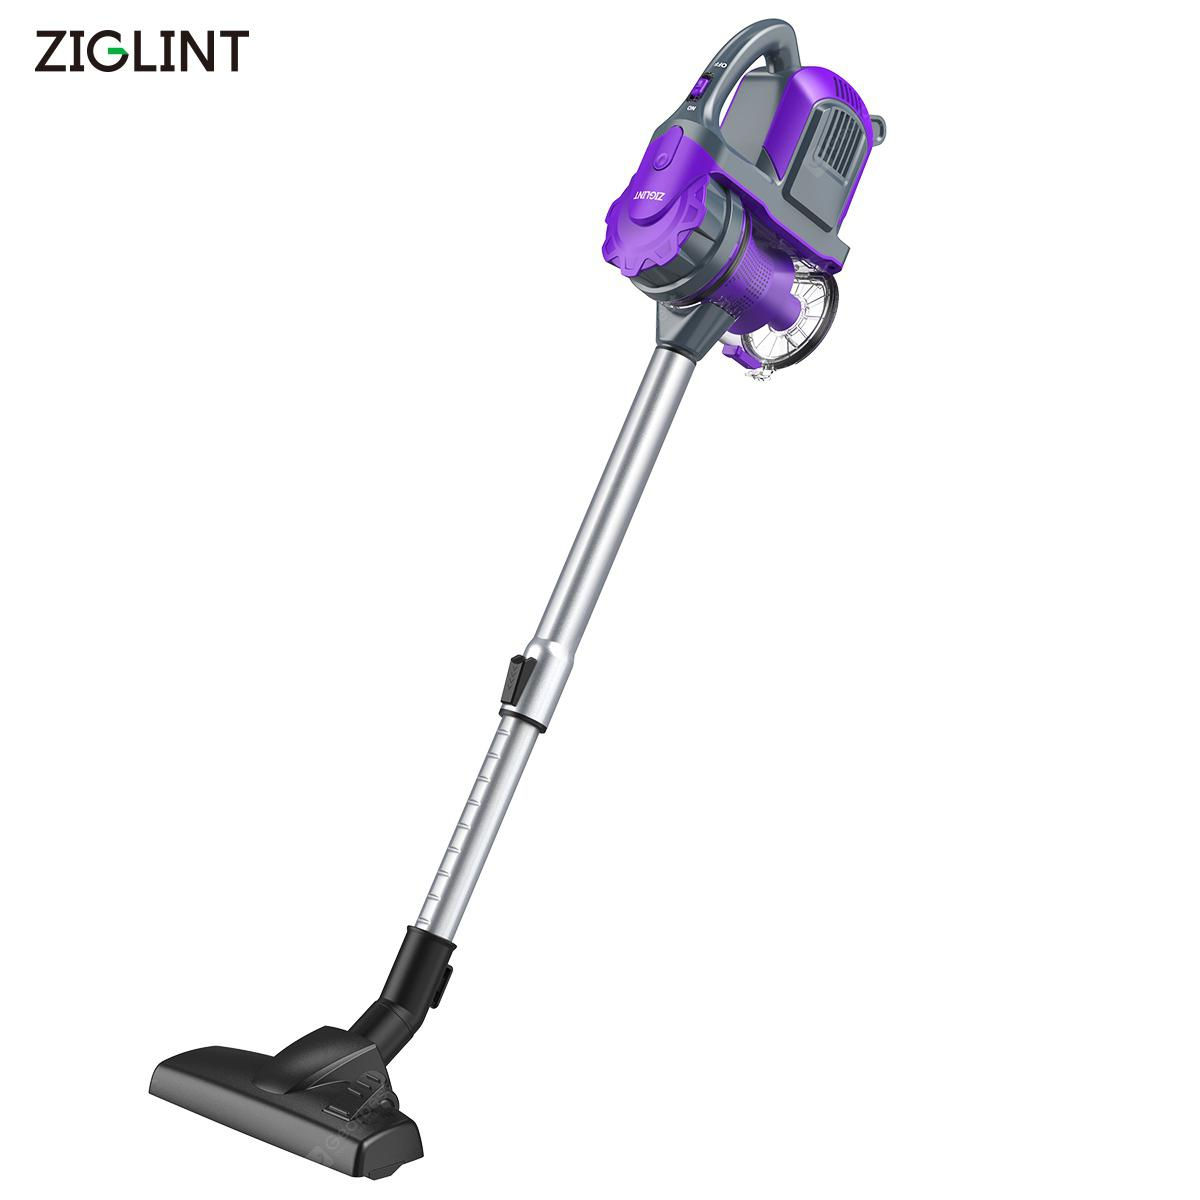 Ziglint Z3 Portable Cordless Handheld Aspirateur